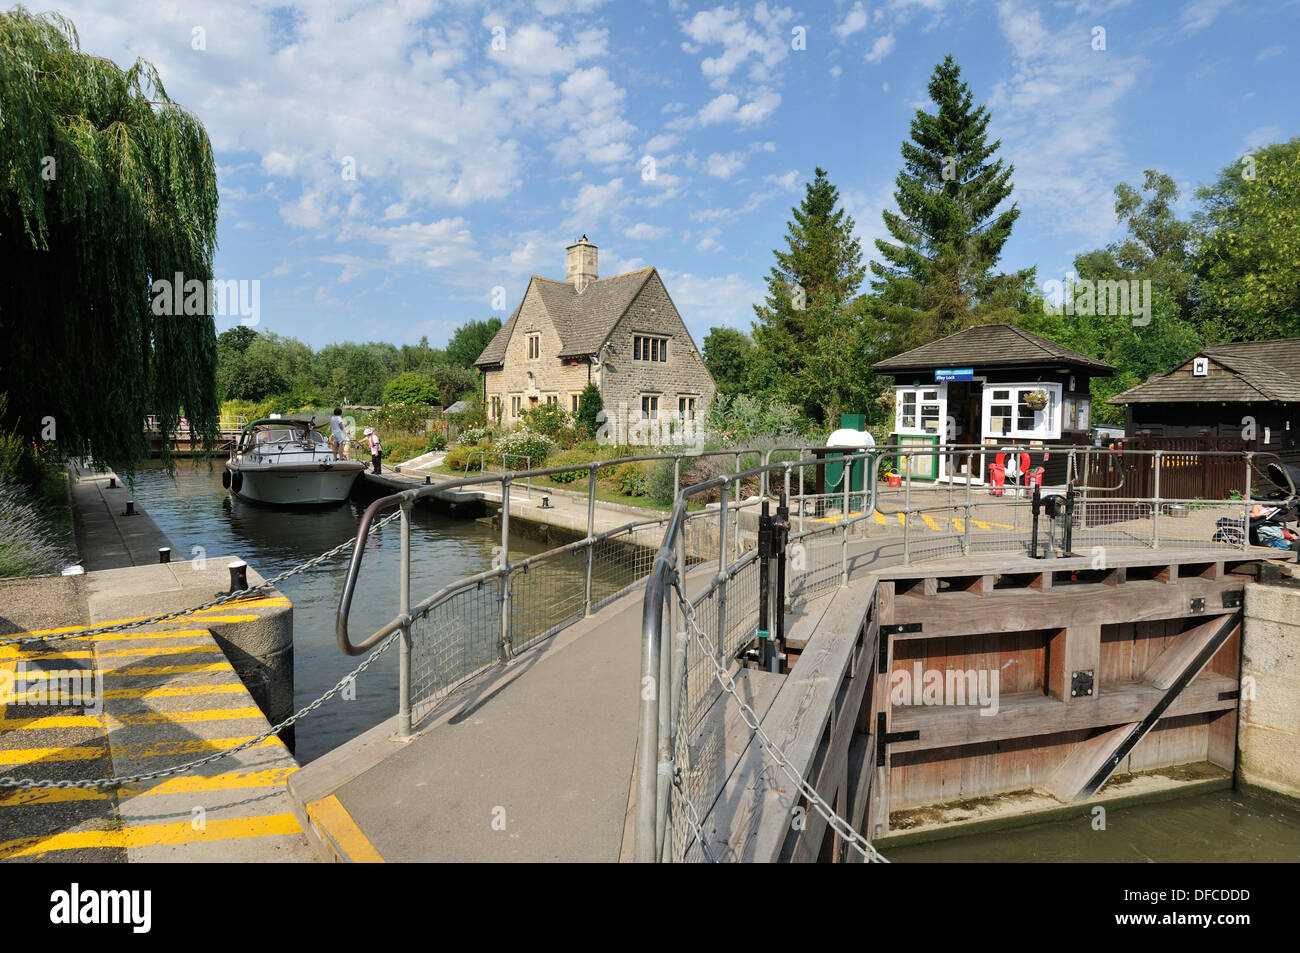 Pleasure boat on the Thames river at Iffley Lock Oxfordshire UK. Stock Photo